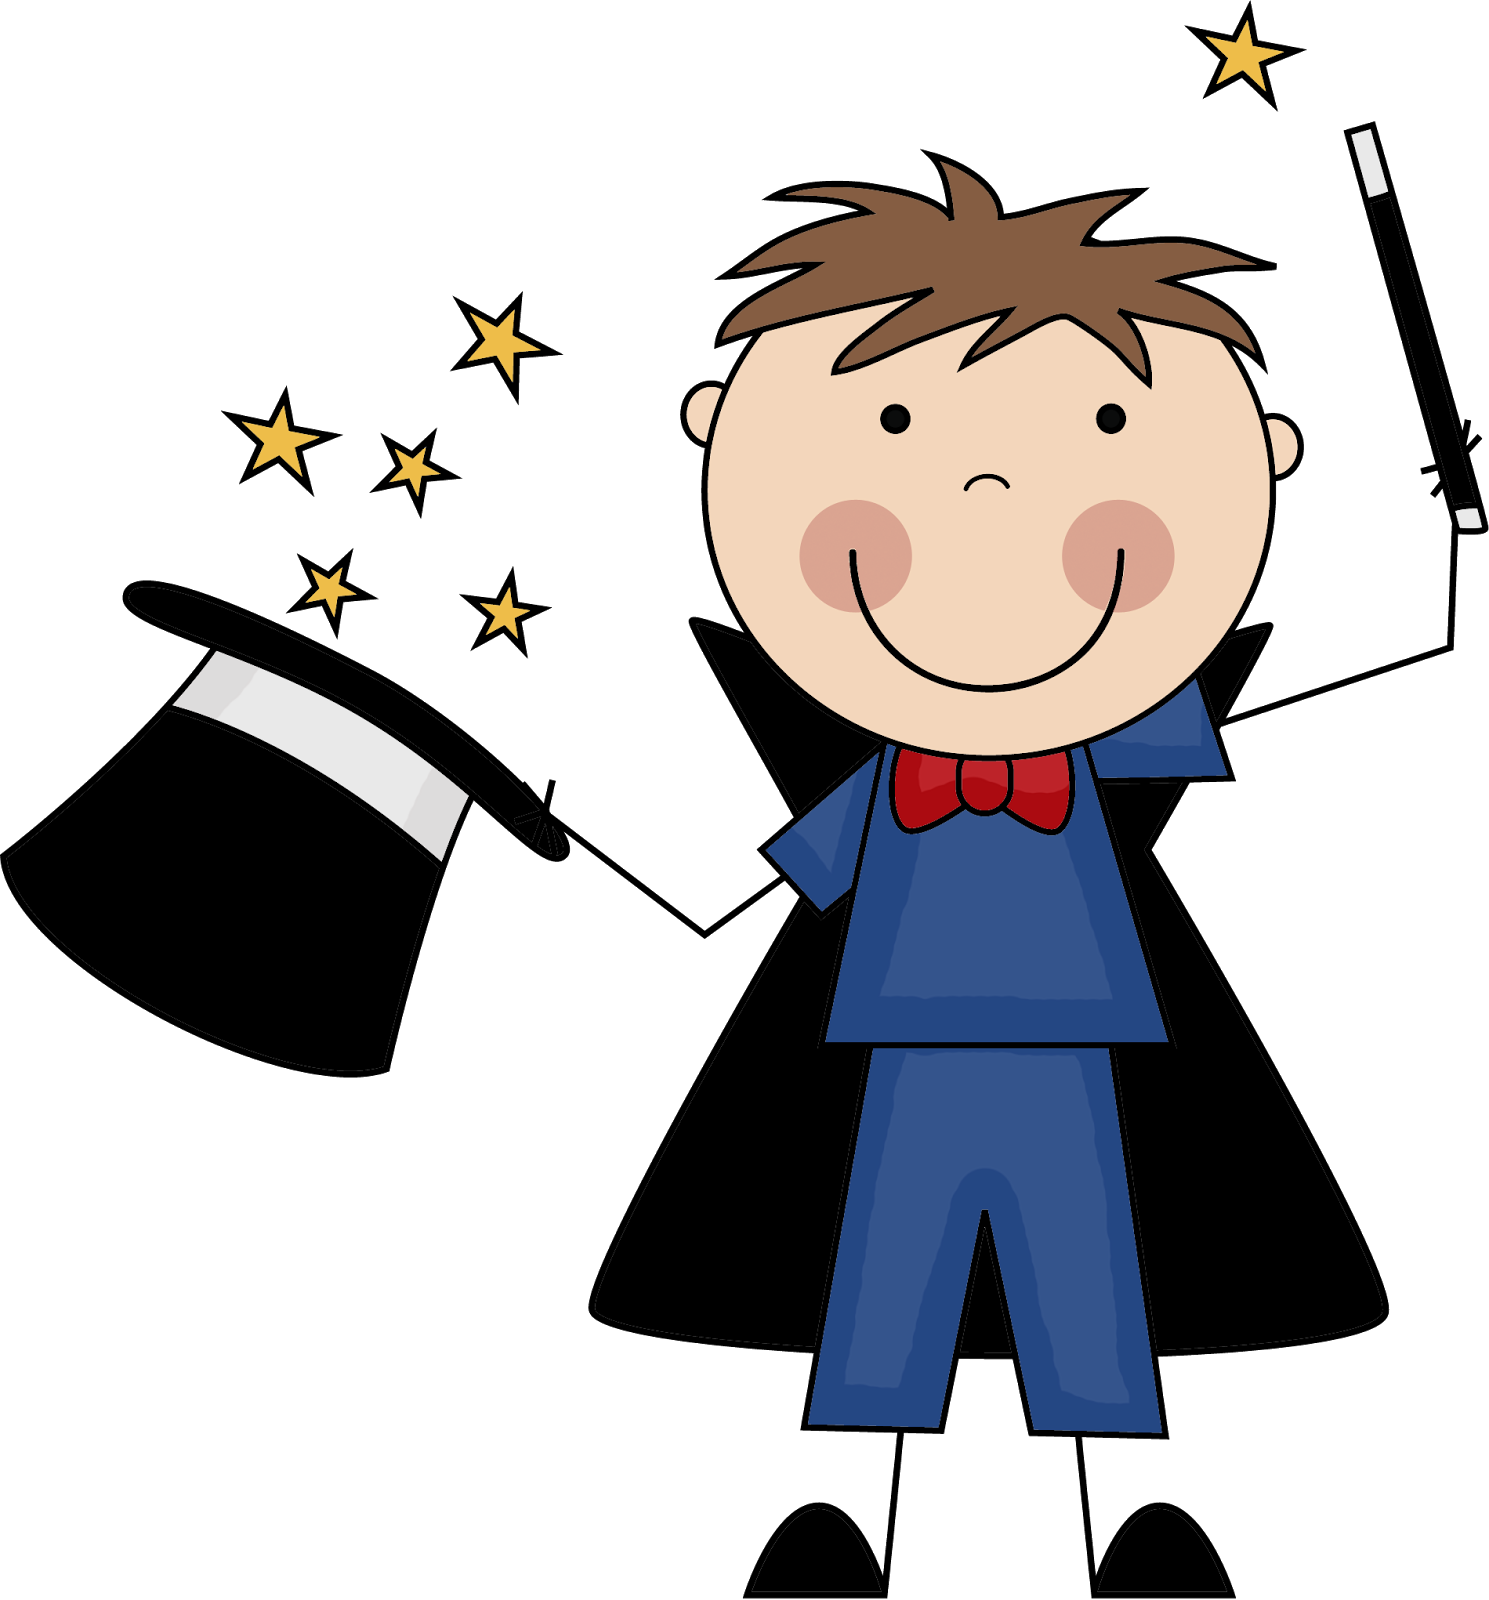 Carnival clipart magician. Students transition smoothly with